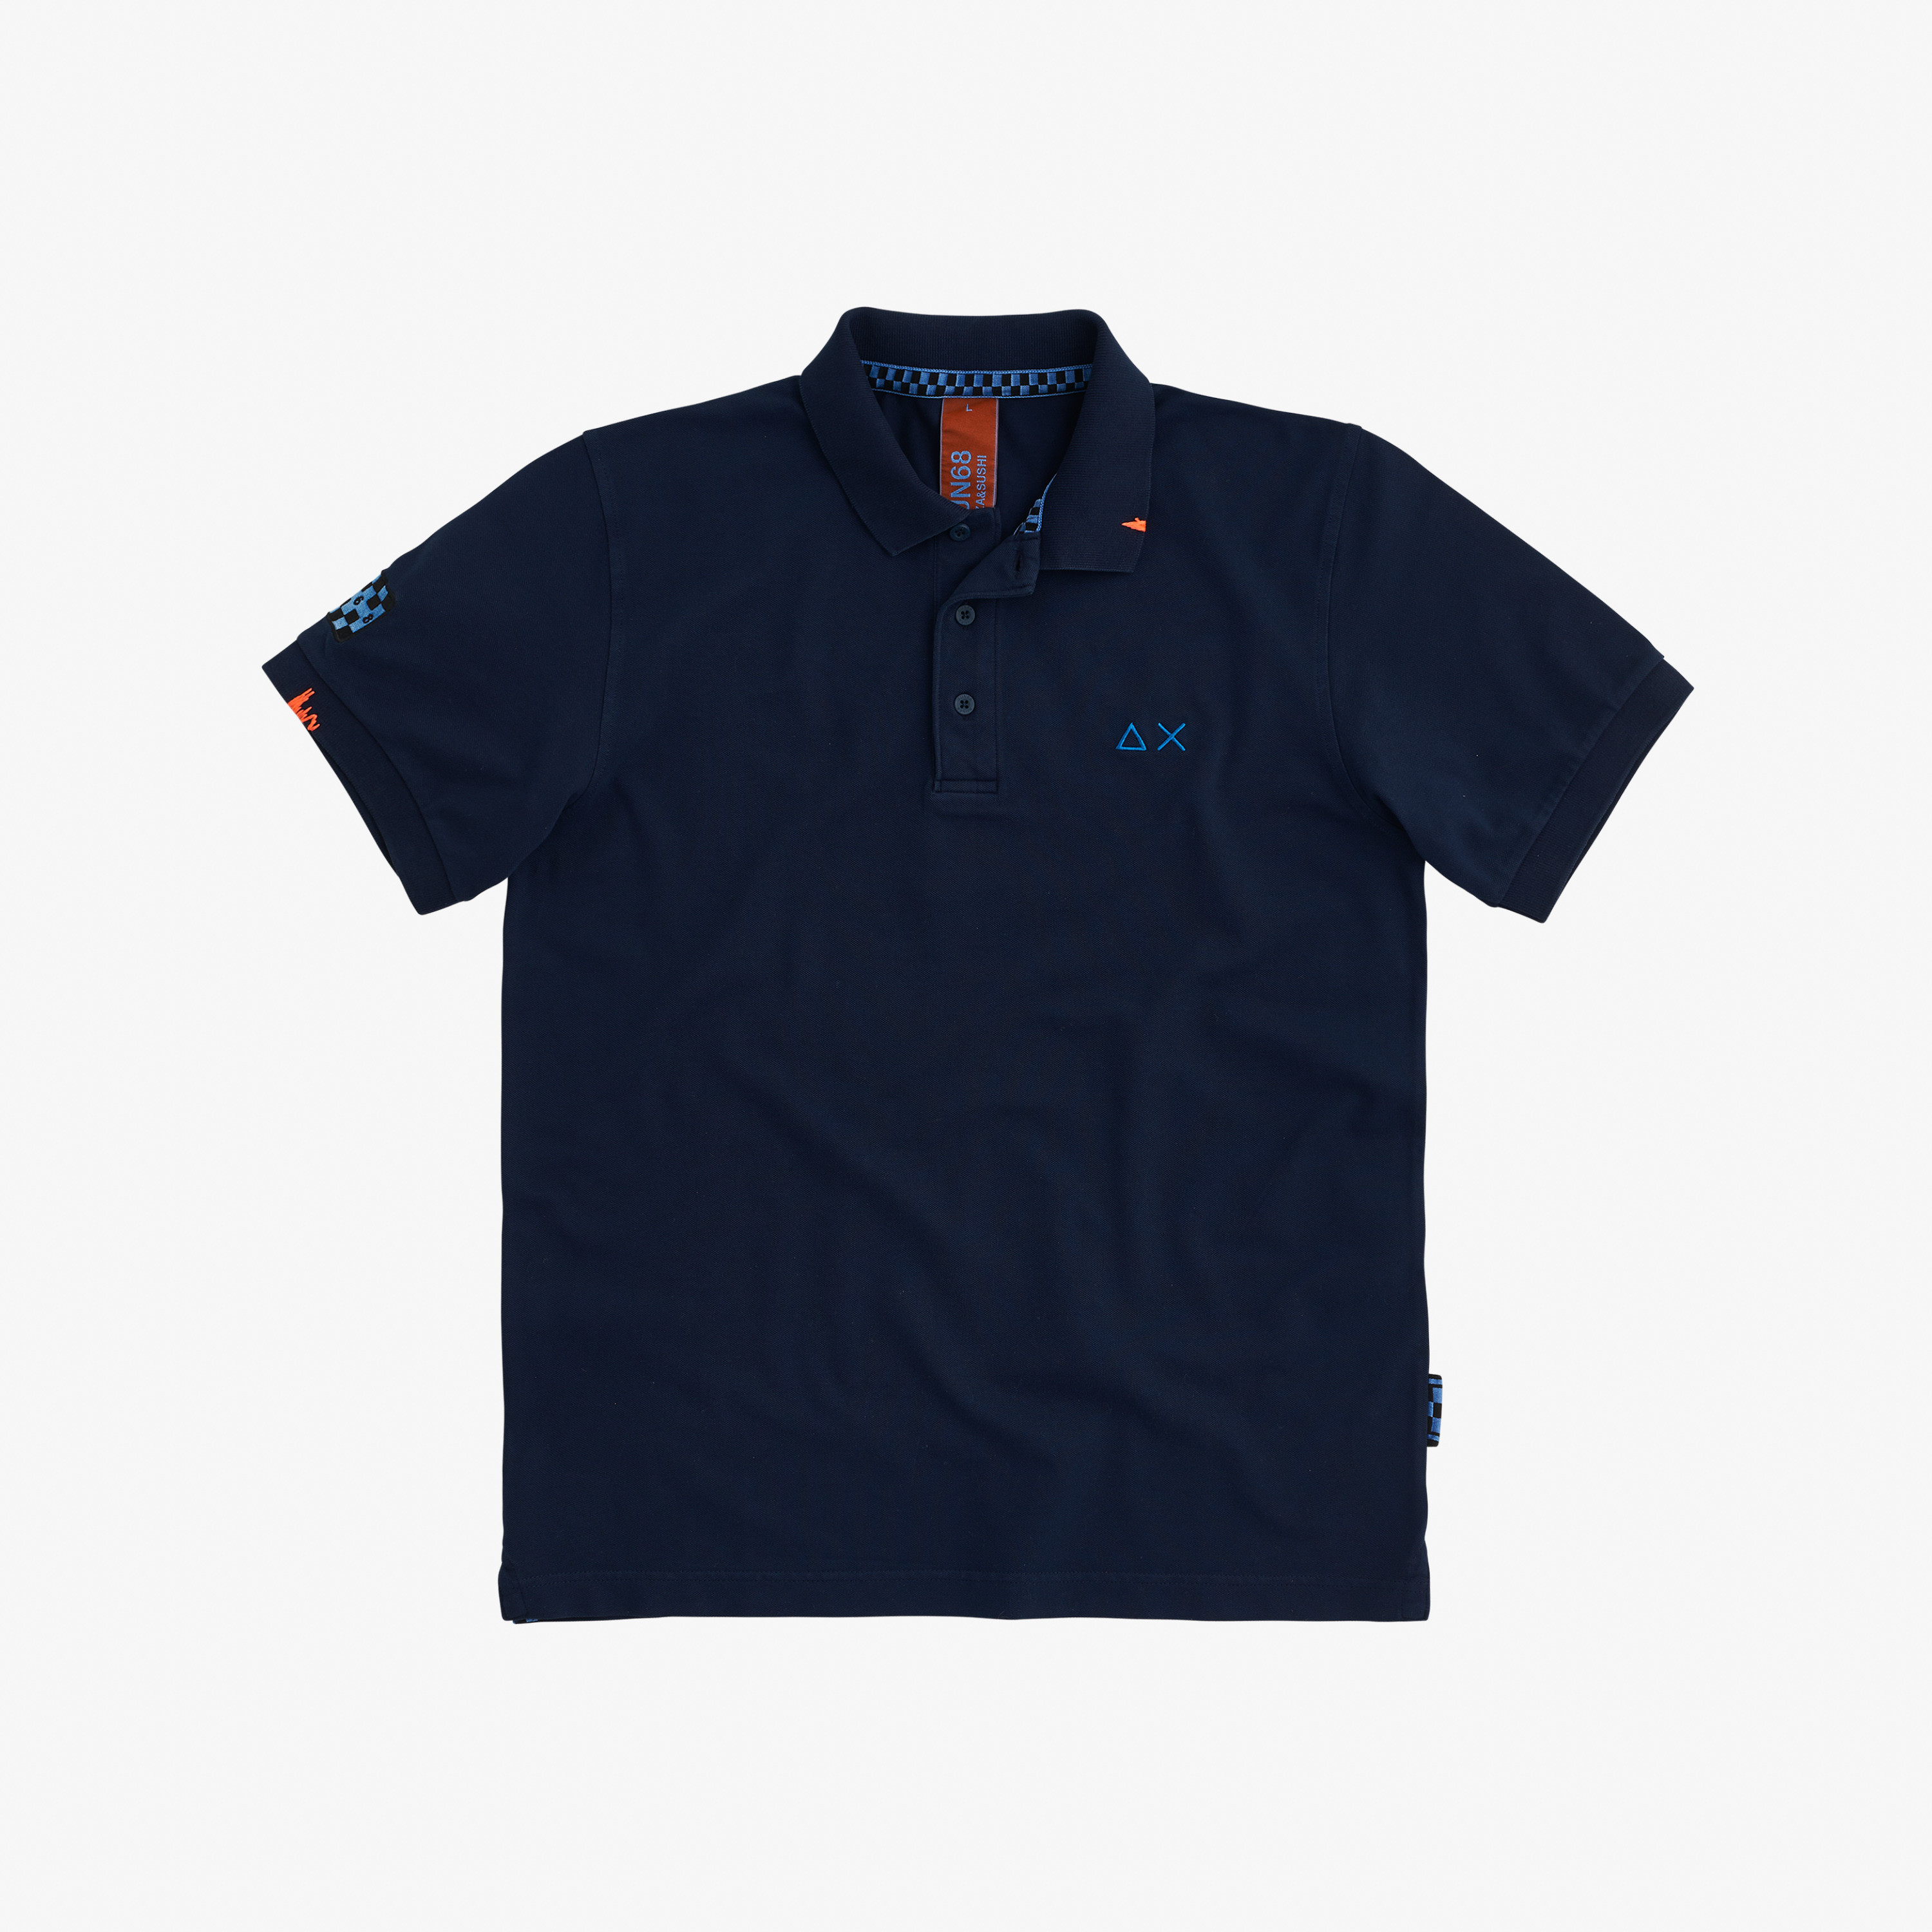 POLO EL. SPECIAL DYED S/S NAVY BLUE